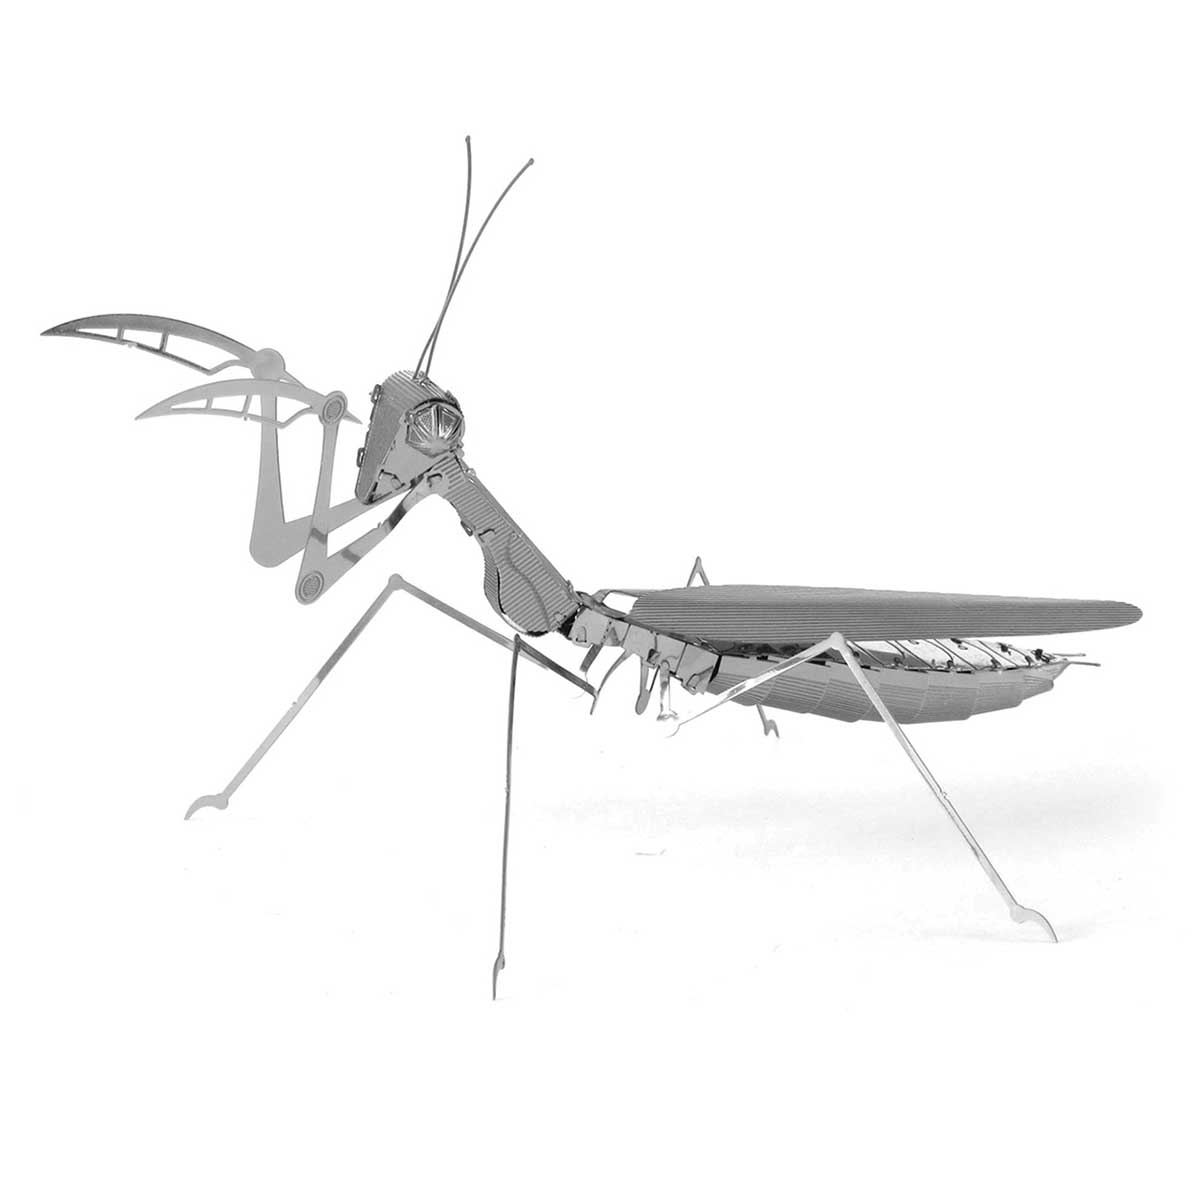 Praying Mantis Butterflies and Insects 3D Puzzle